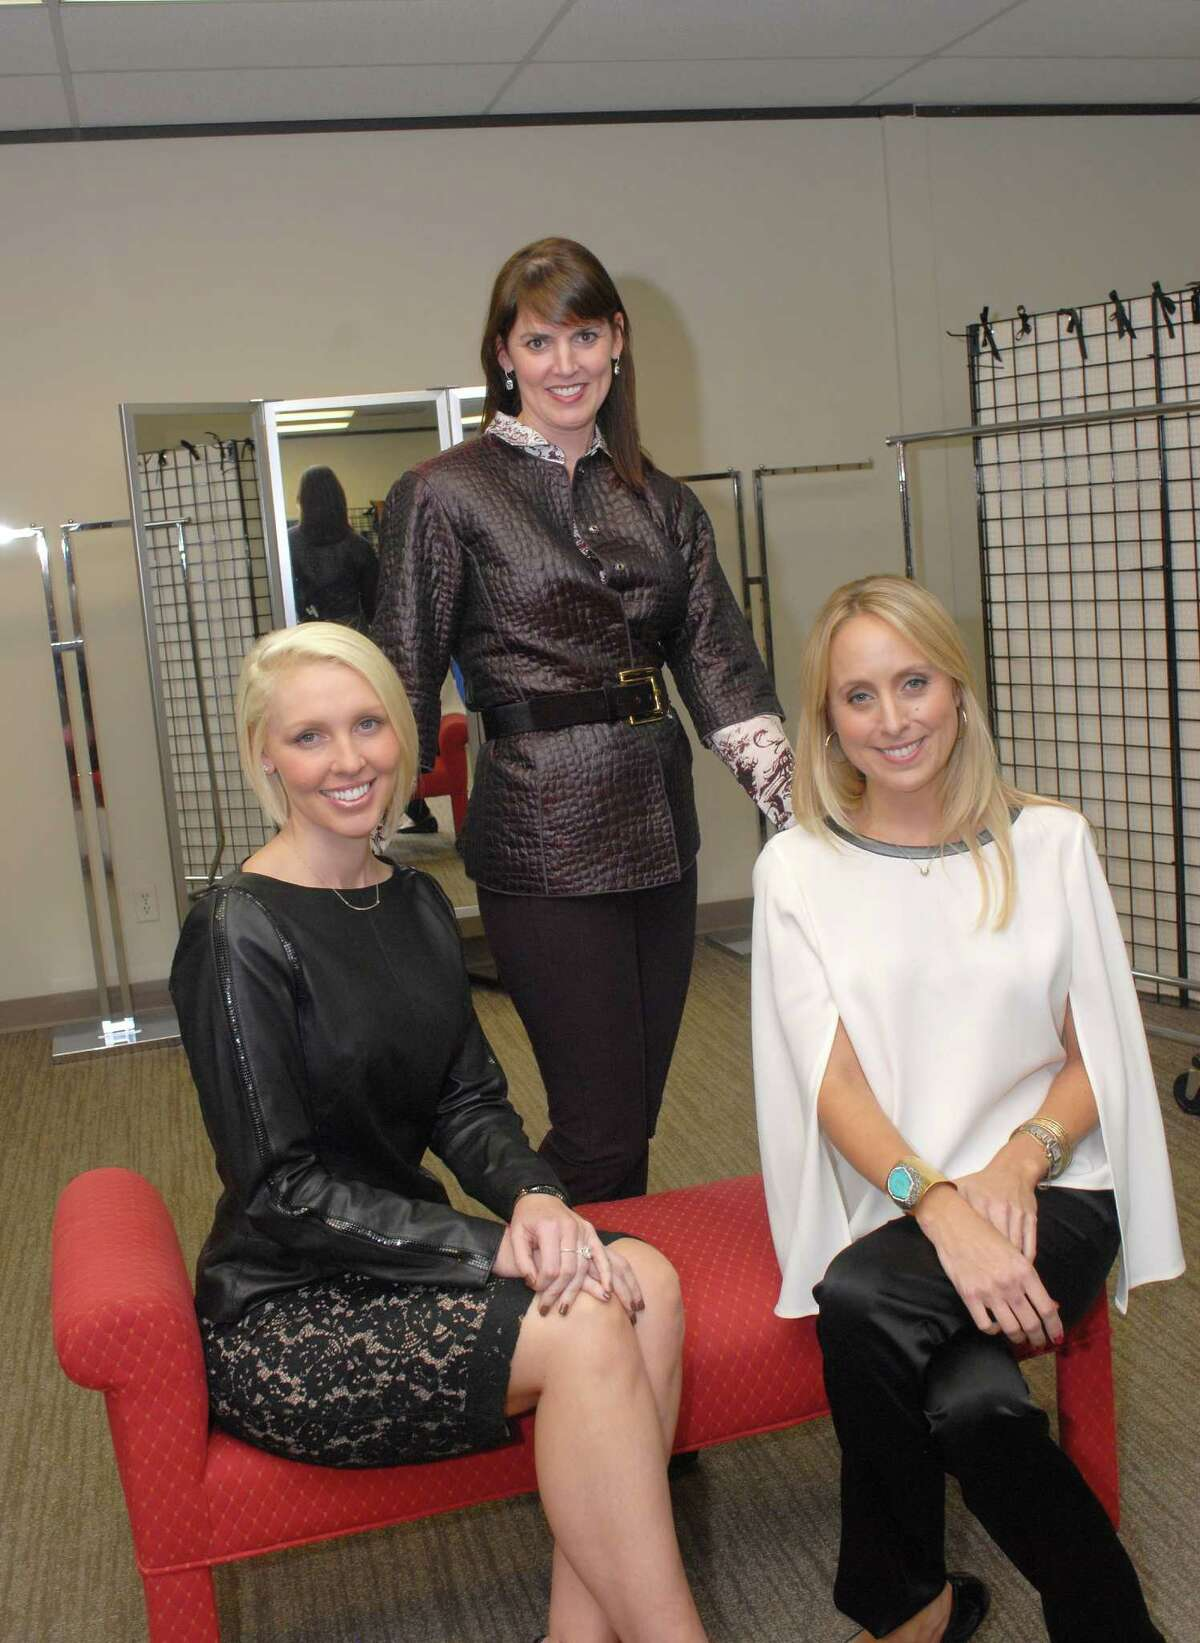 Wardrobe stylist, Rebecca Matthews,center, Natalie Daniels,left, and Emily Elliott,right, helps people enhance their wardrobes. They are personal style analysis, personal shopping, closet consultations and wardrobe planning in some of her company's services.